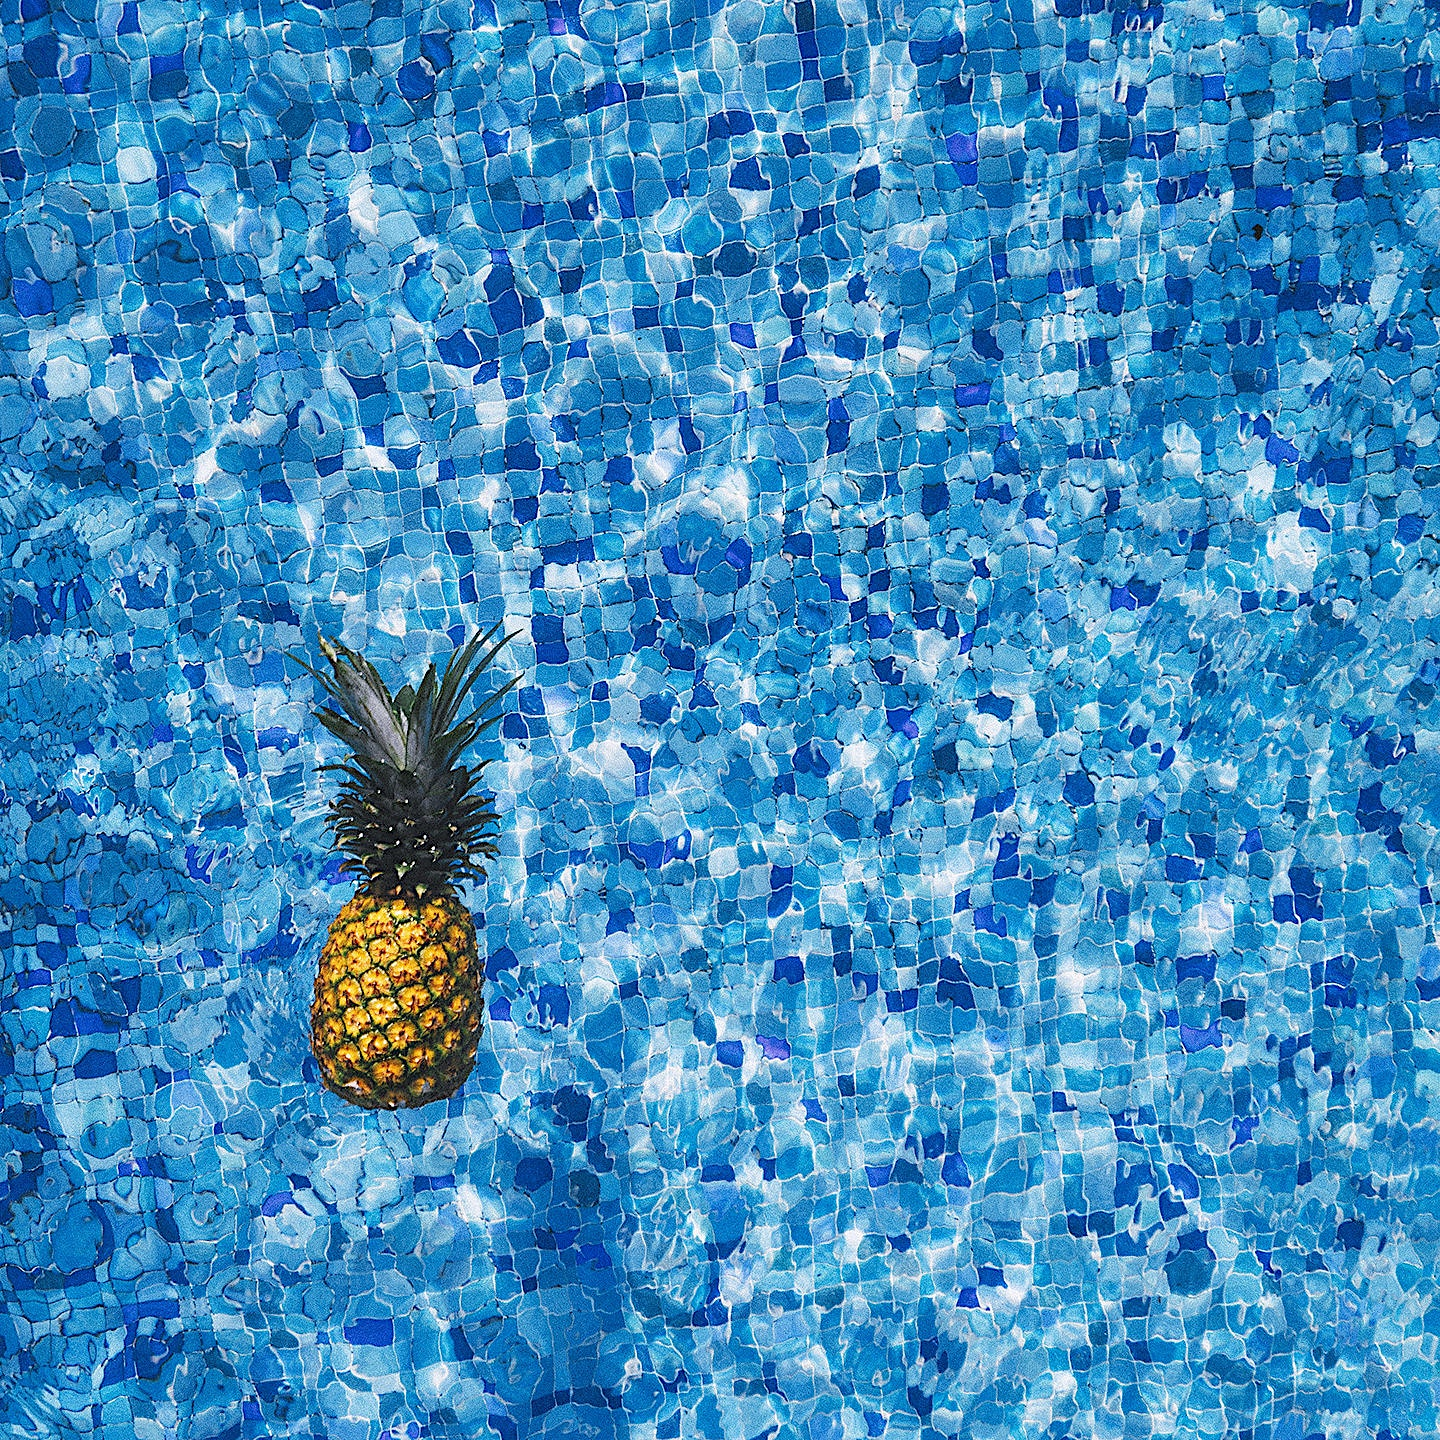 Pineapple floating in pool photo